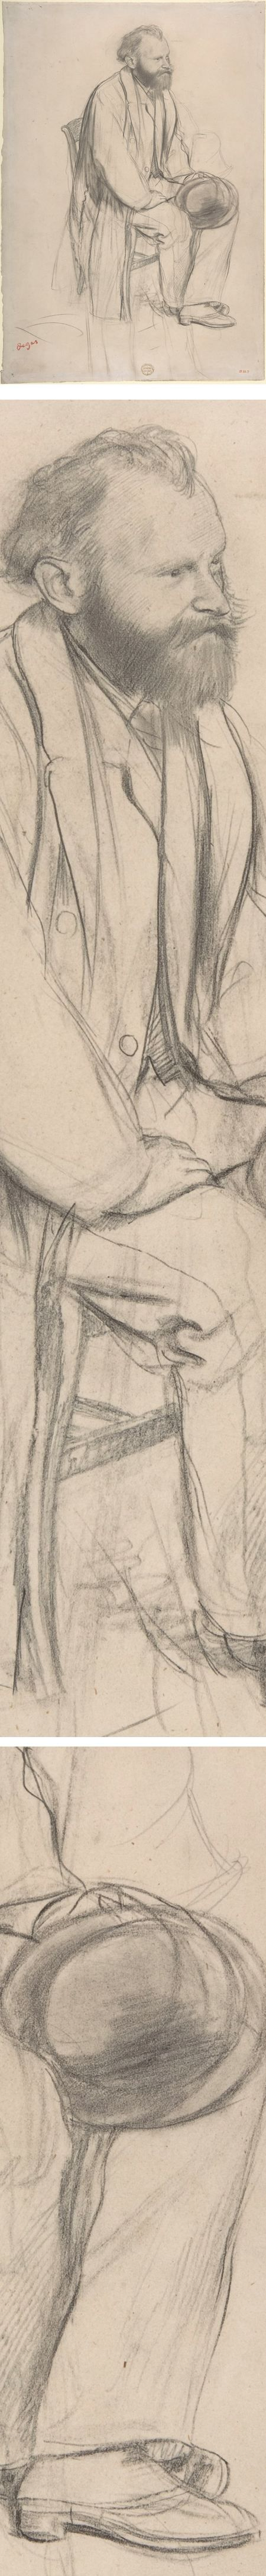 Eye Candy for Today: Degas' portrait of Manet